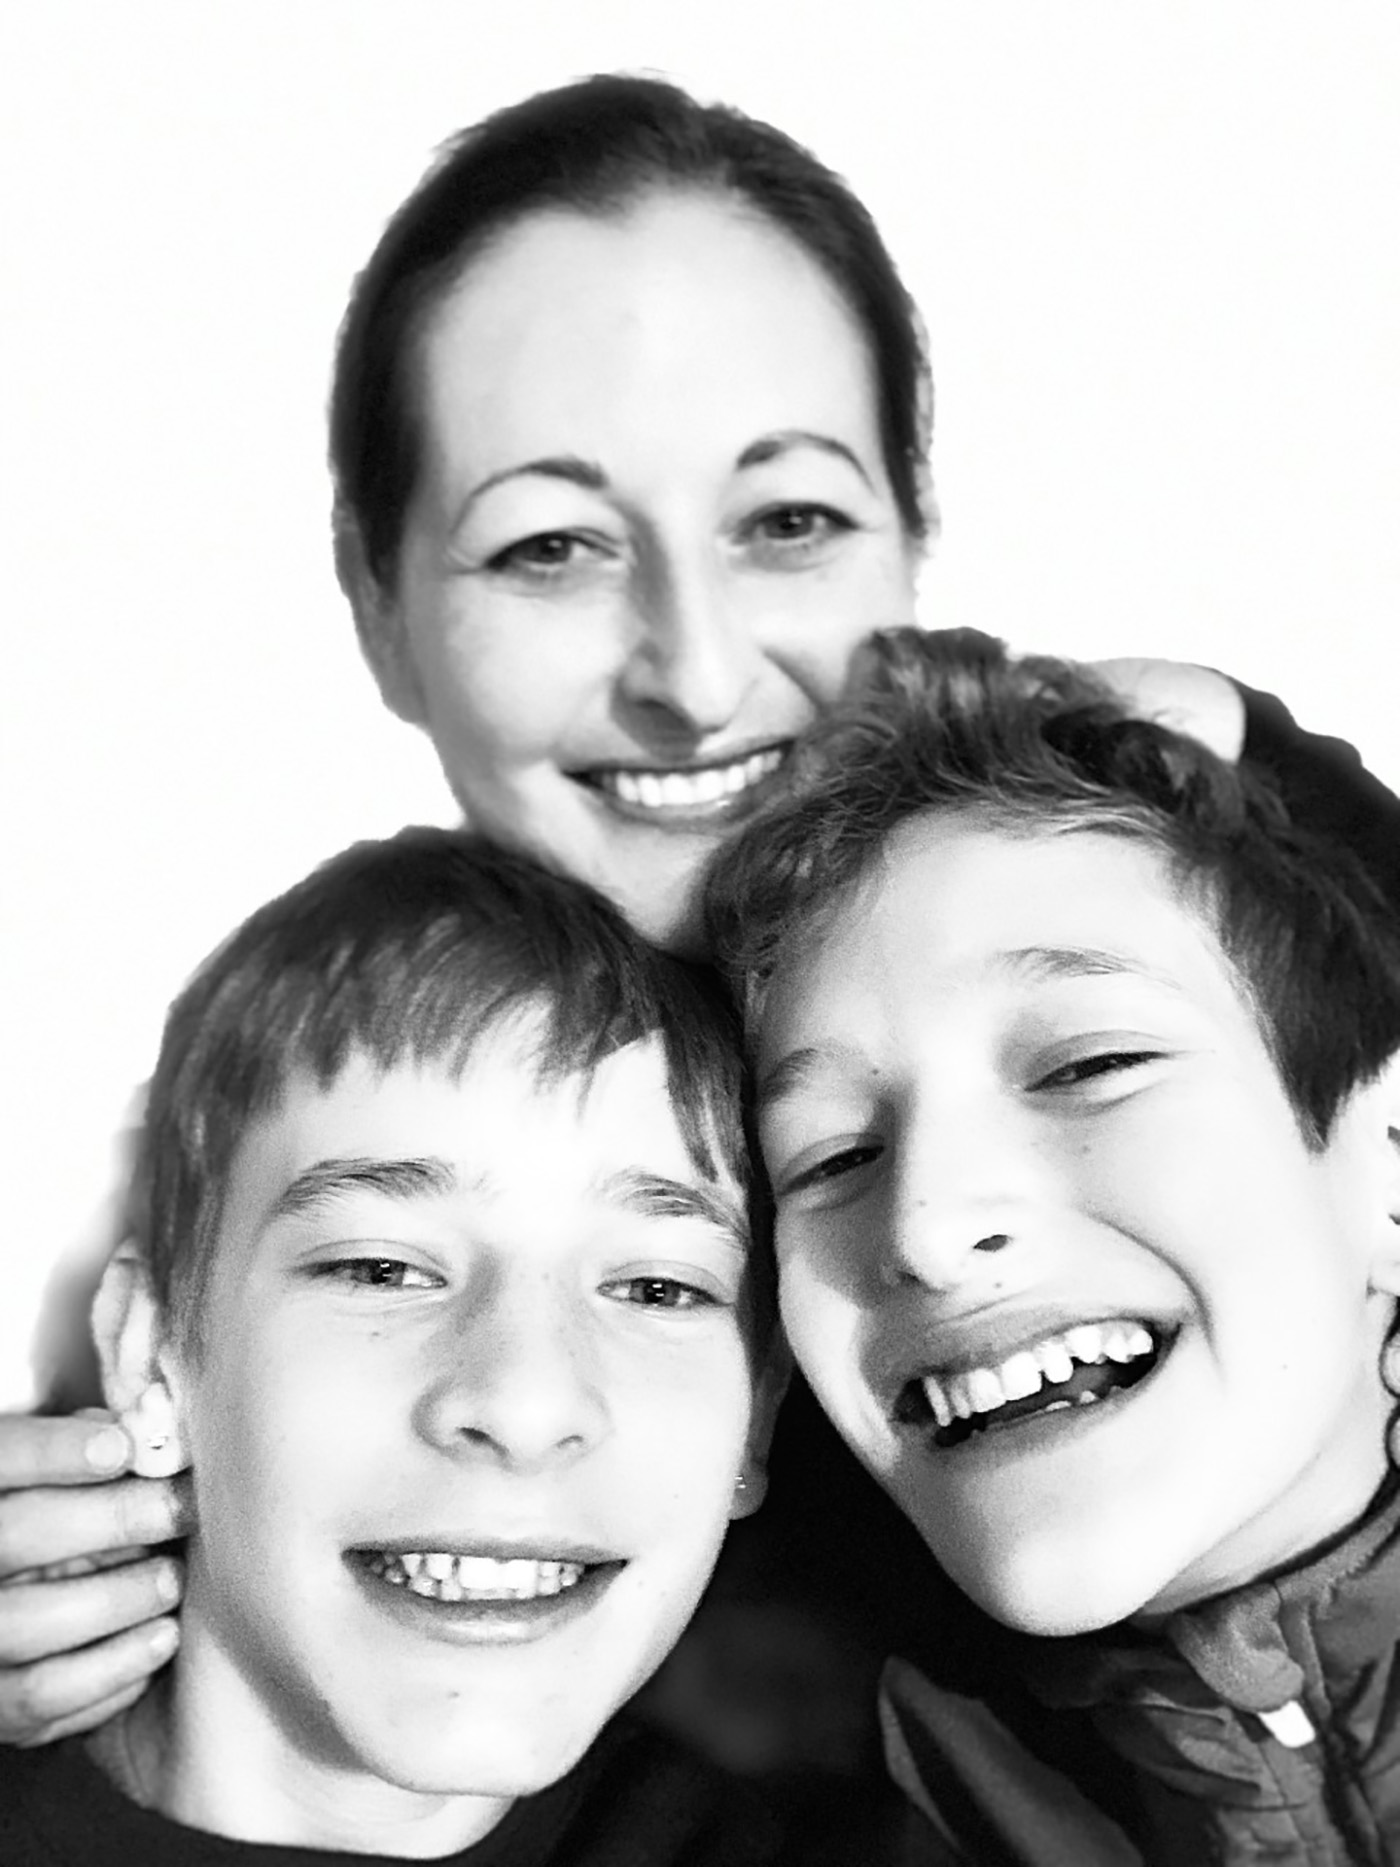 Anna Shusterman with her sons Max and Reuben